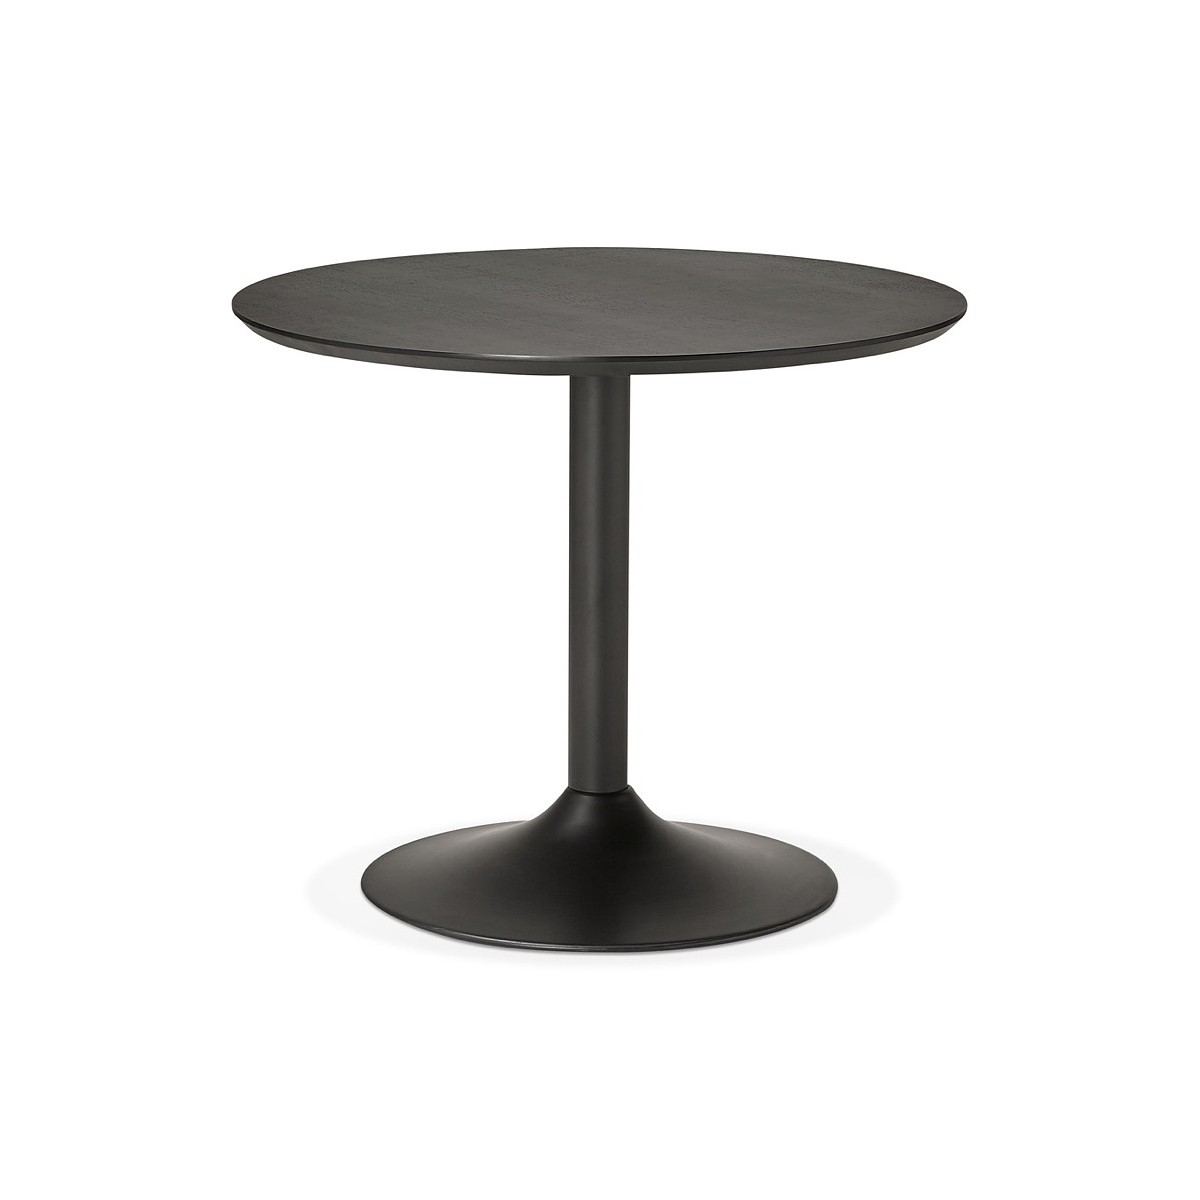 table round dining design or office maud in mdf and painted metal o 90 cm black amp story 5755